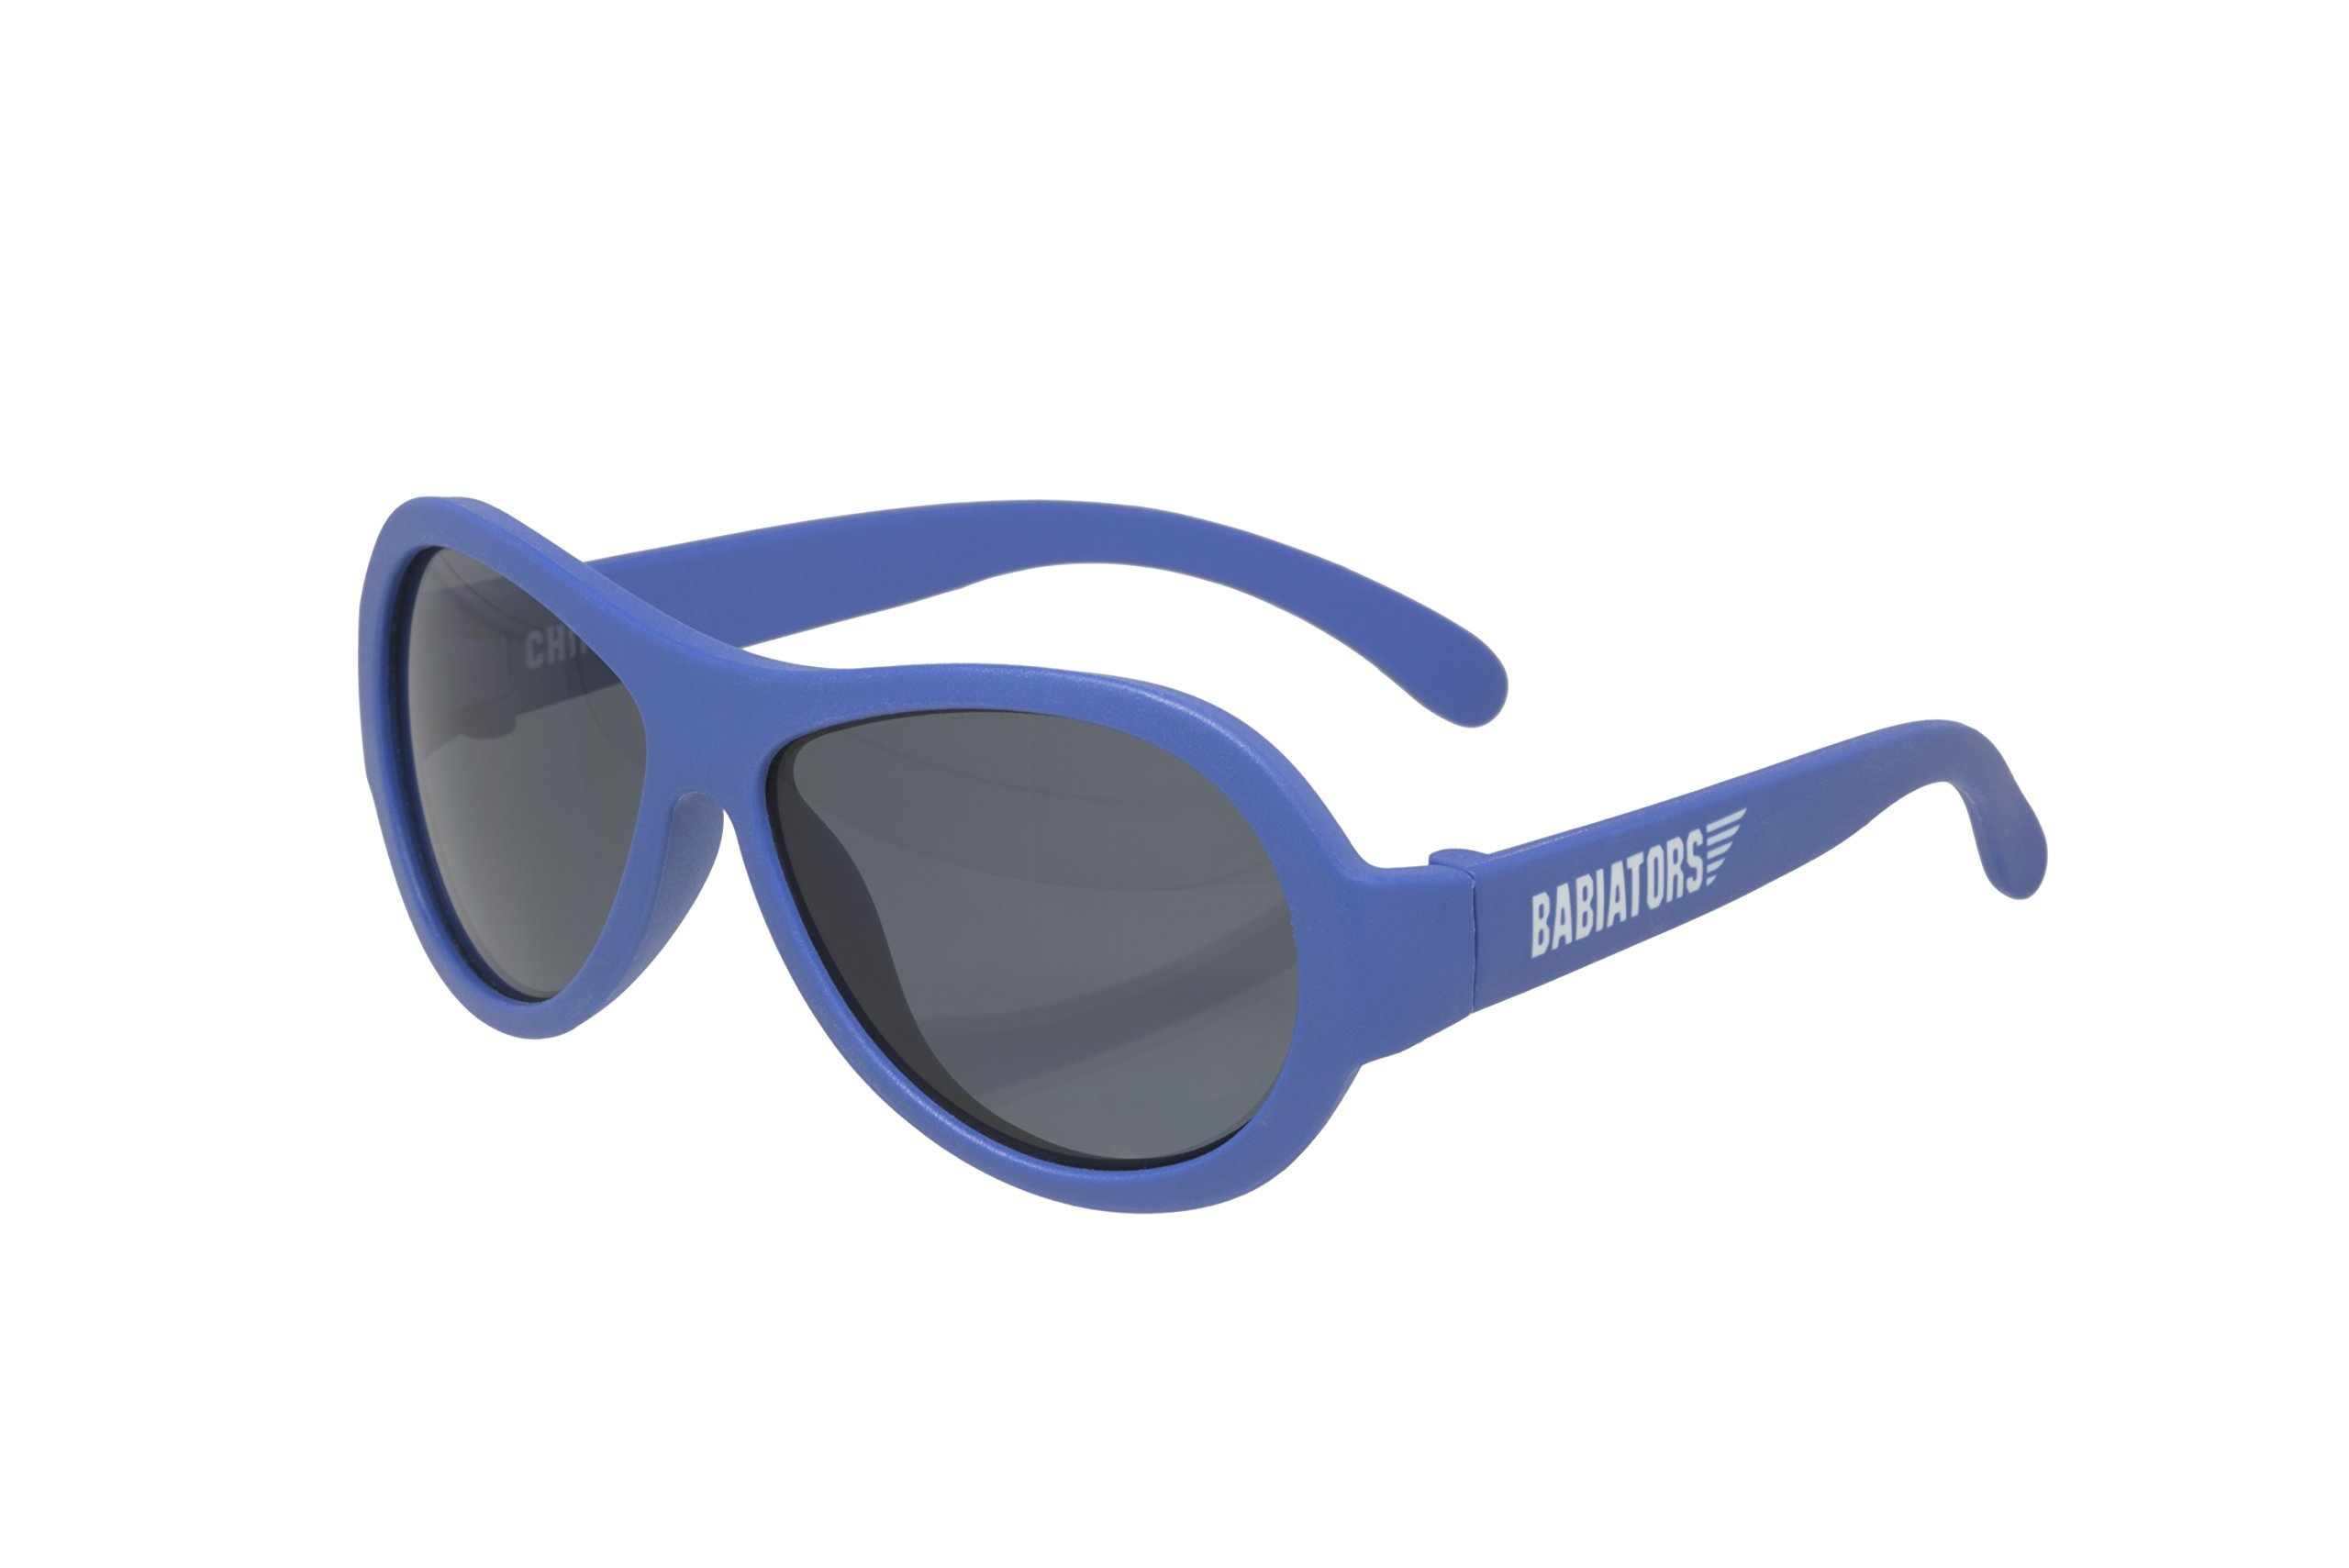 Babiators Kinder Original Aviators UV-Sonnenbrille, True Blue, 3-5 Jahre